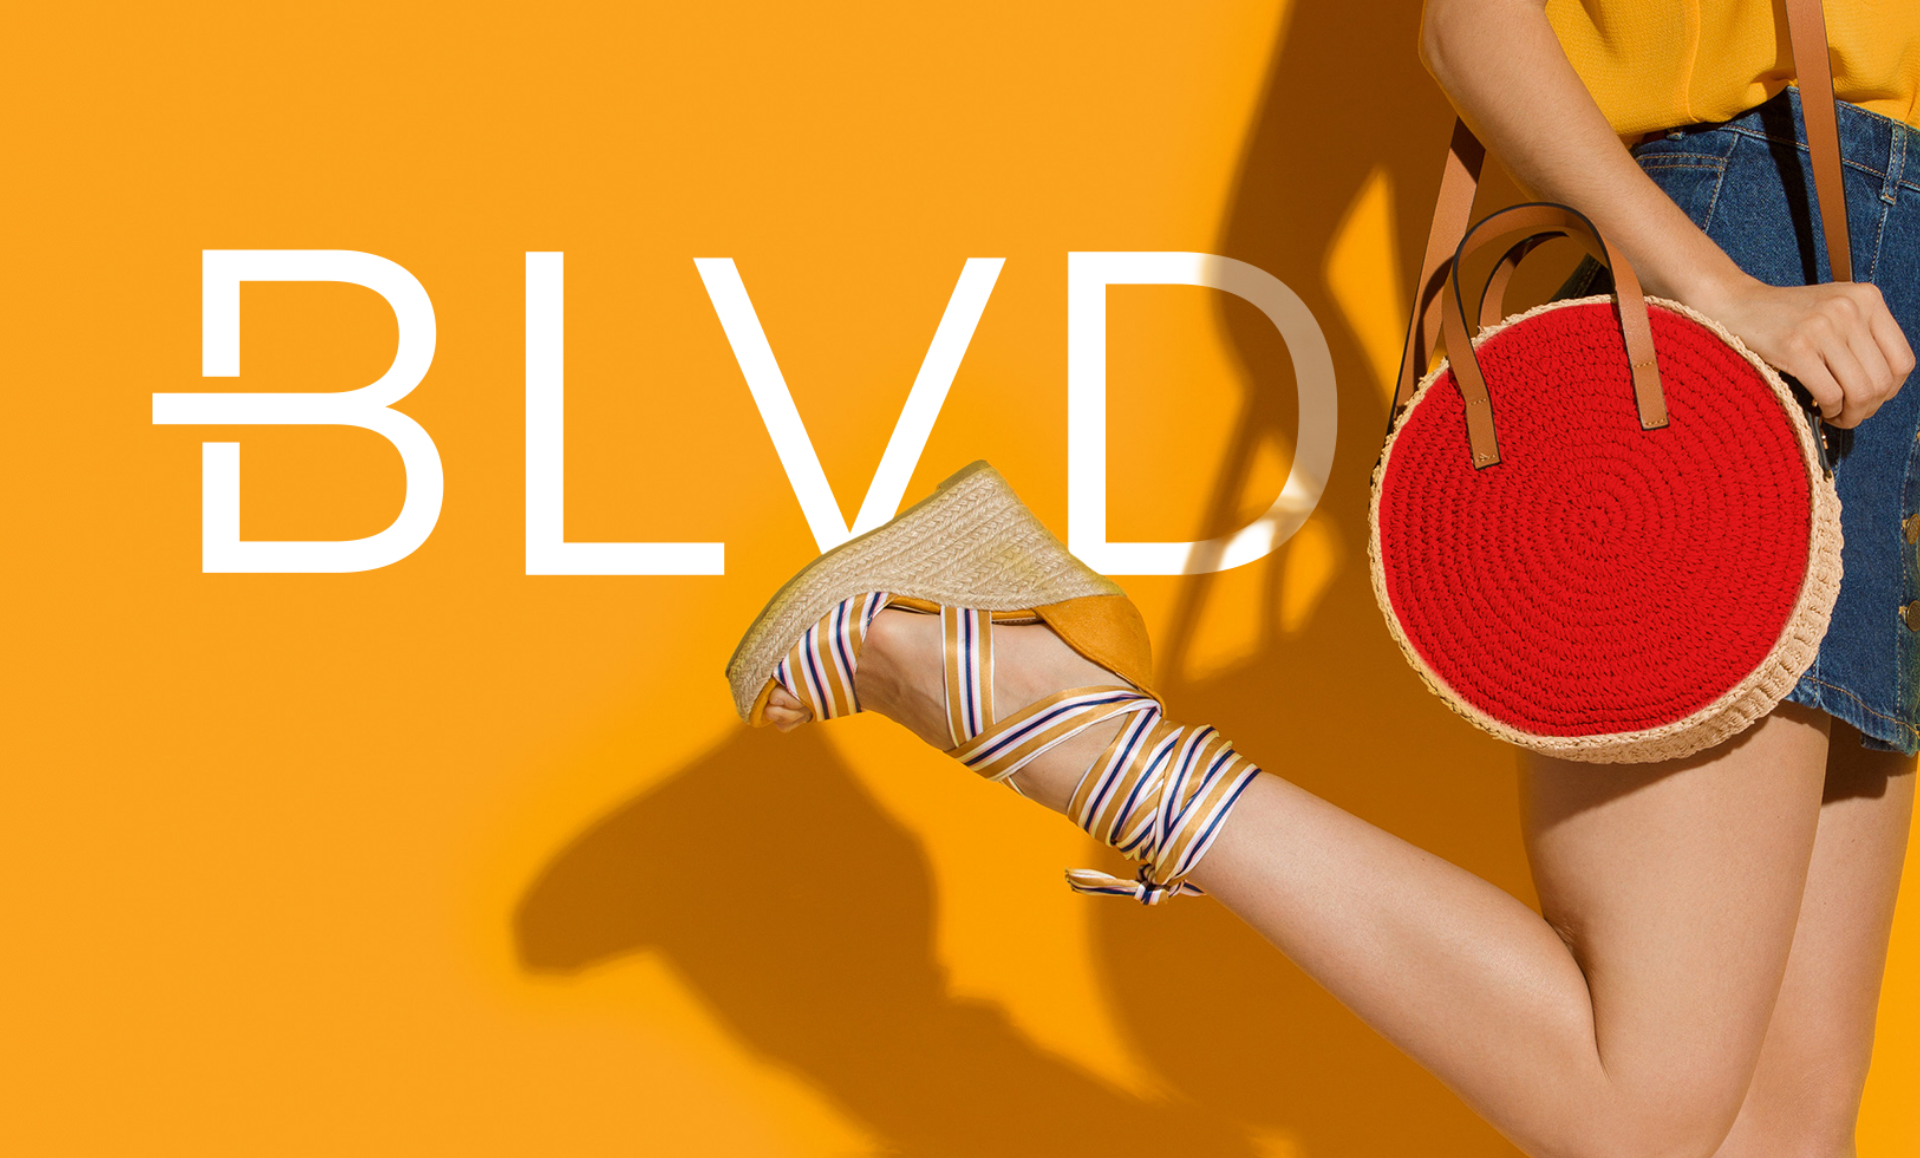 Read more on BLVD Shoes